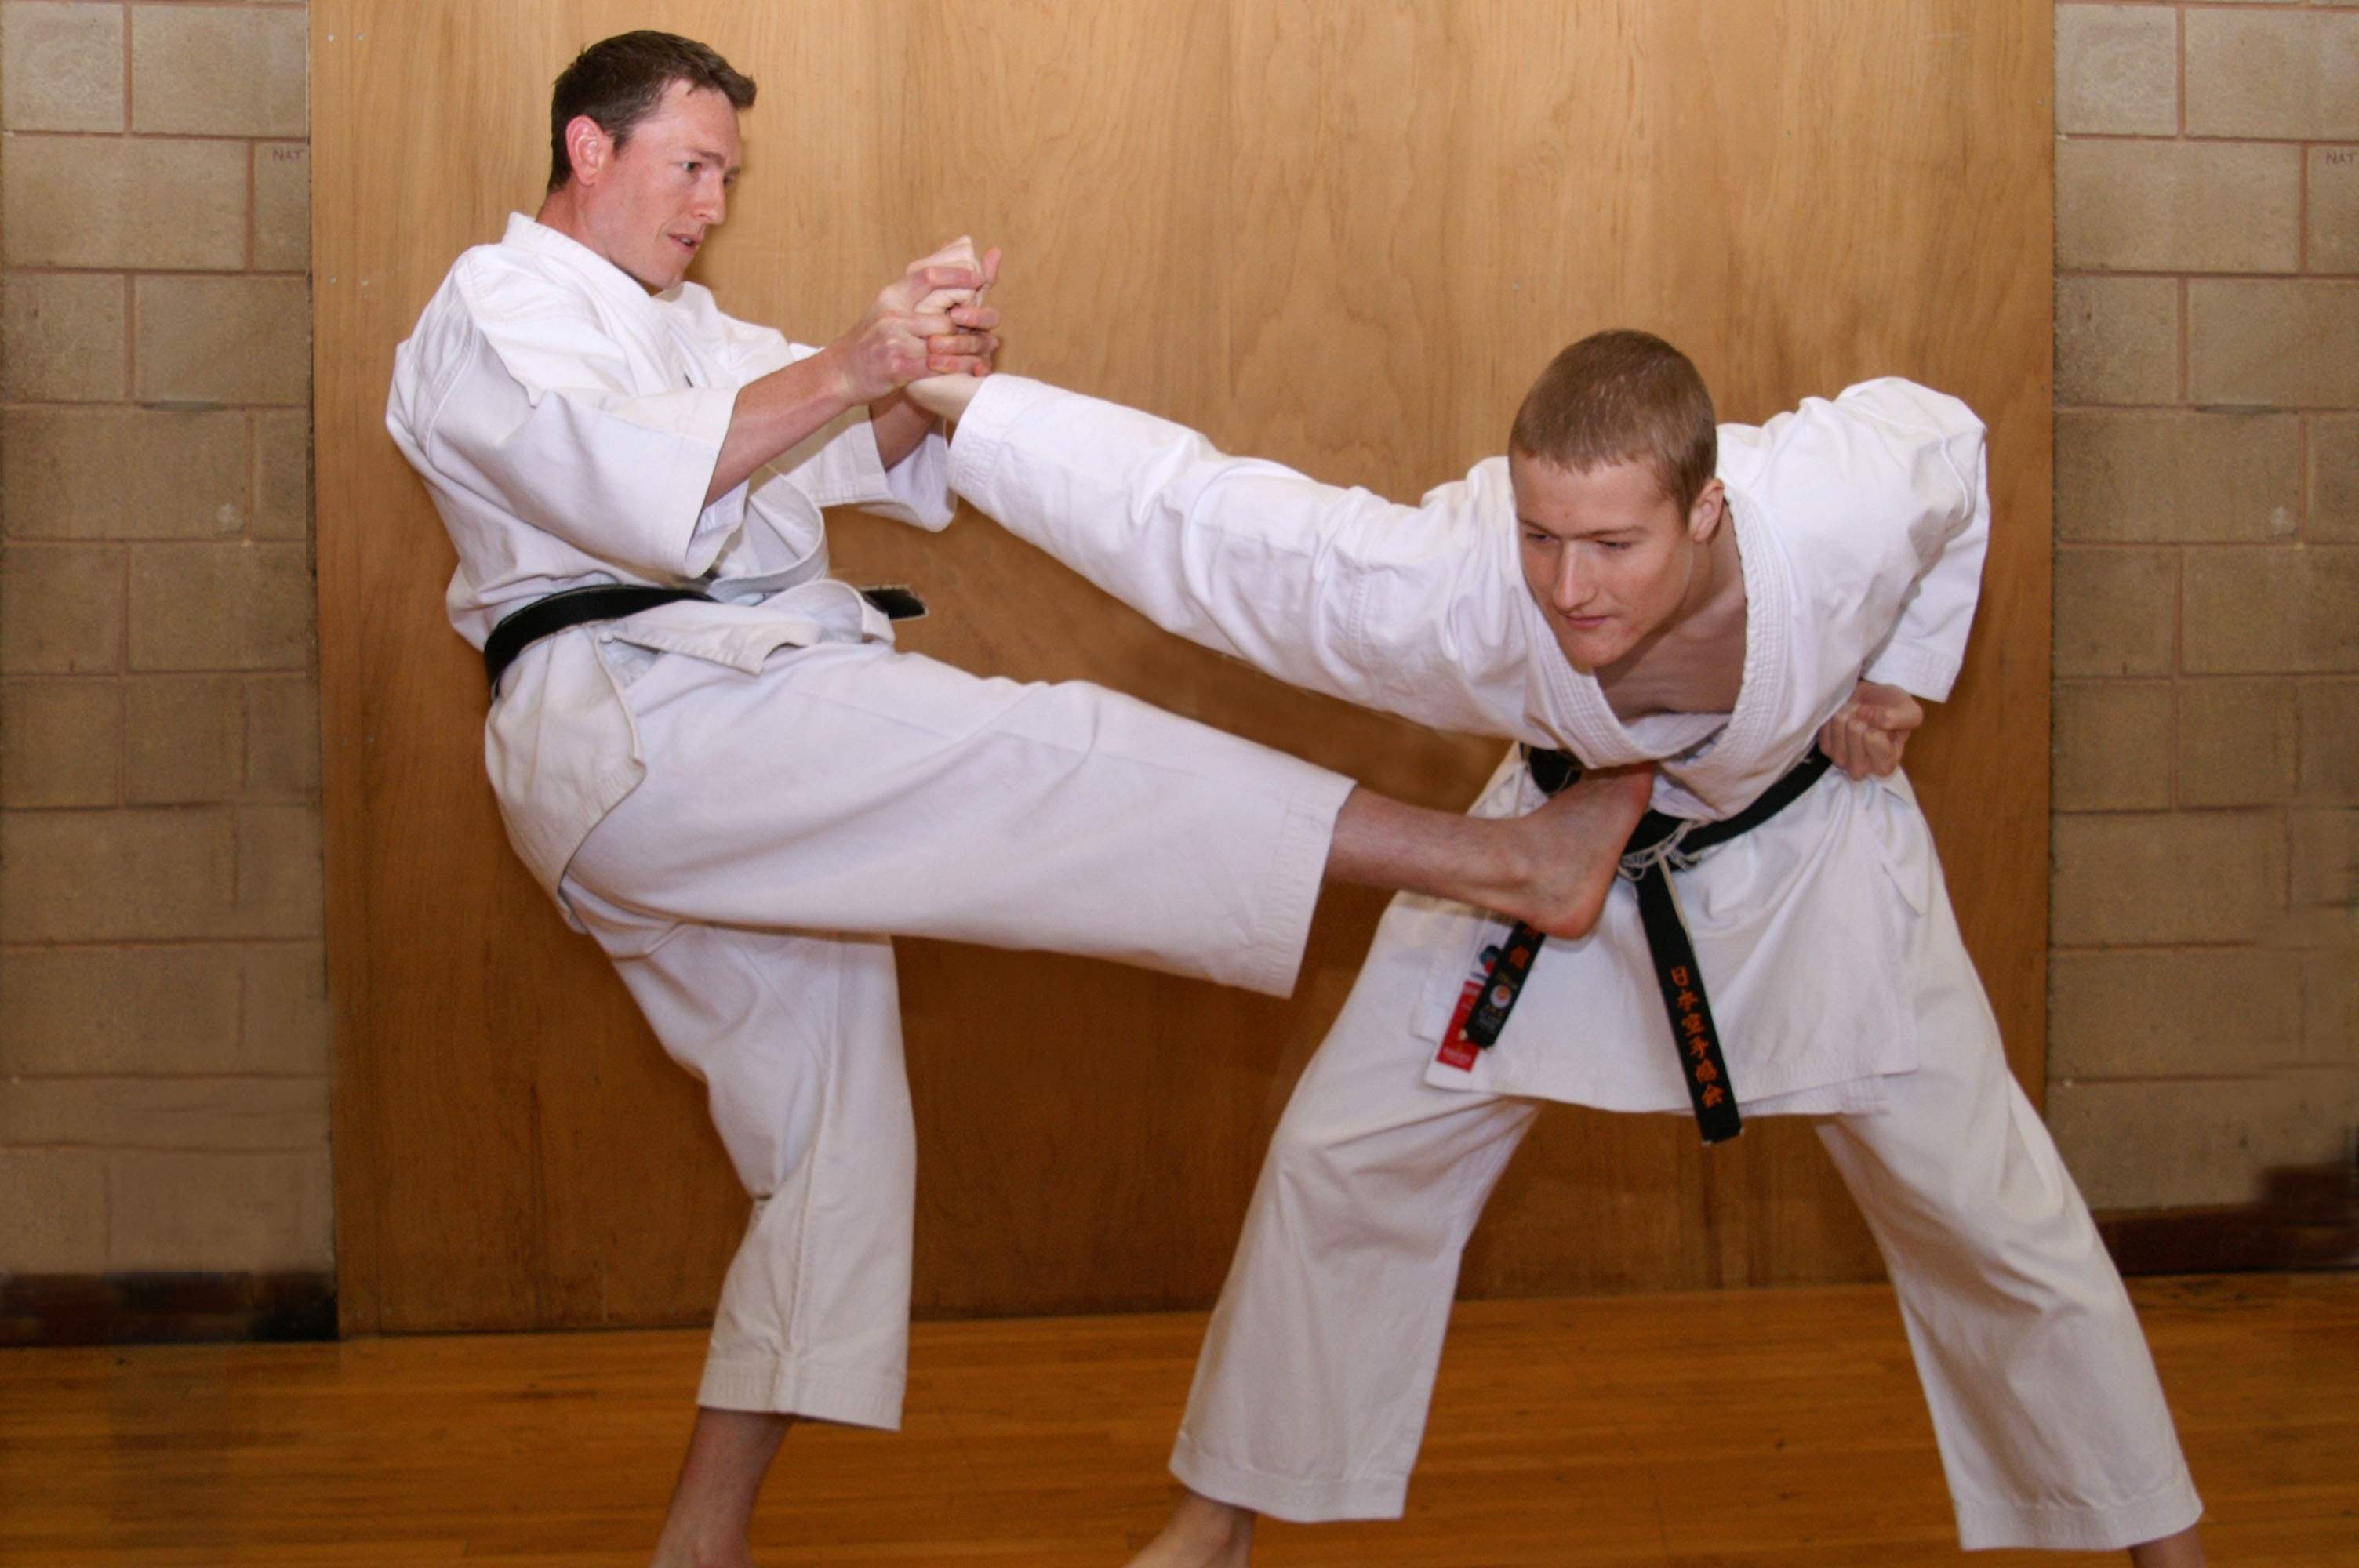 Karatekas practicing self-defense moves